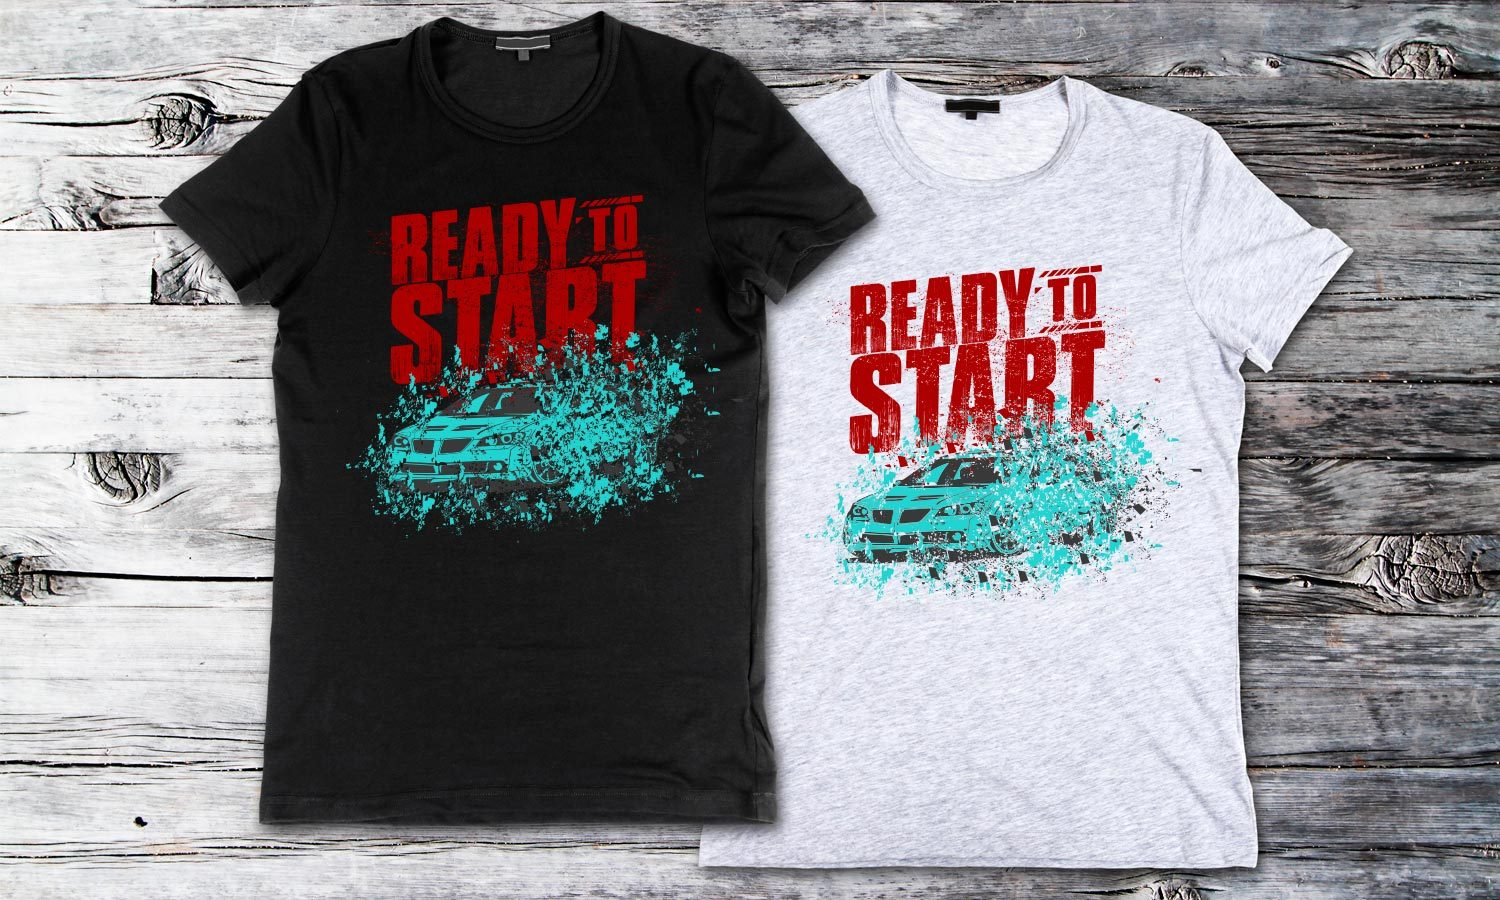 Ready to Start - Printed T-Shirt for Men, Women and Kids - TS147